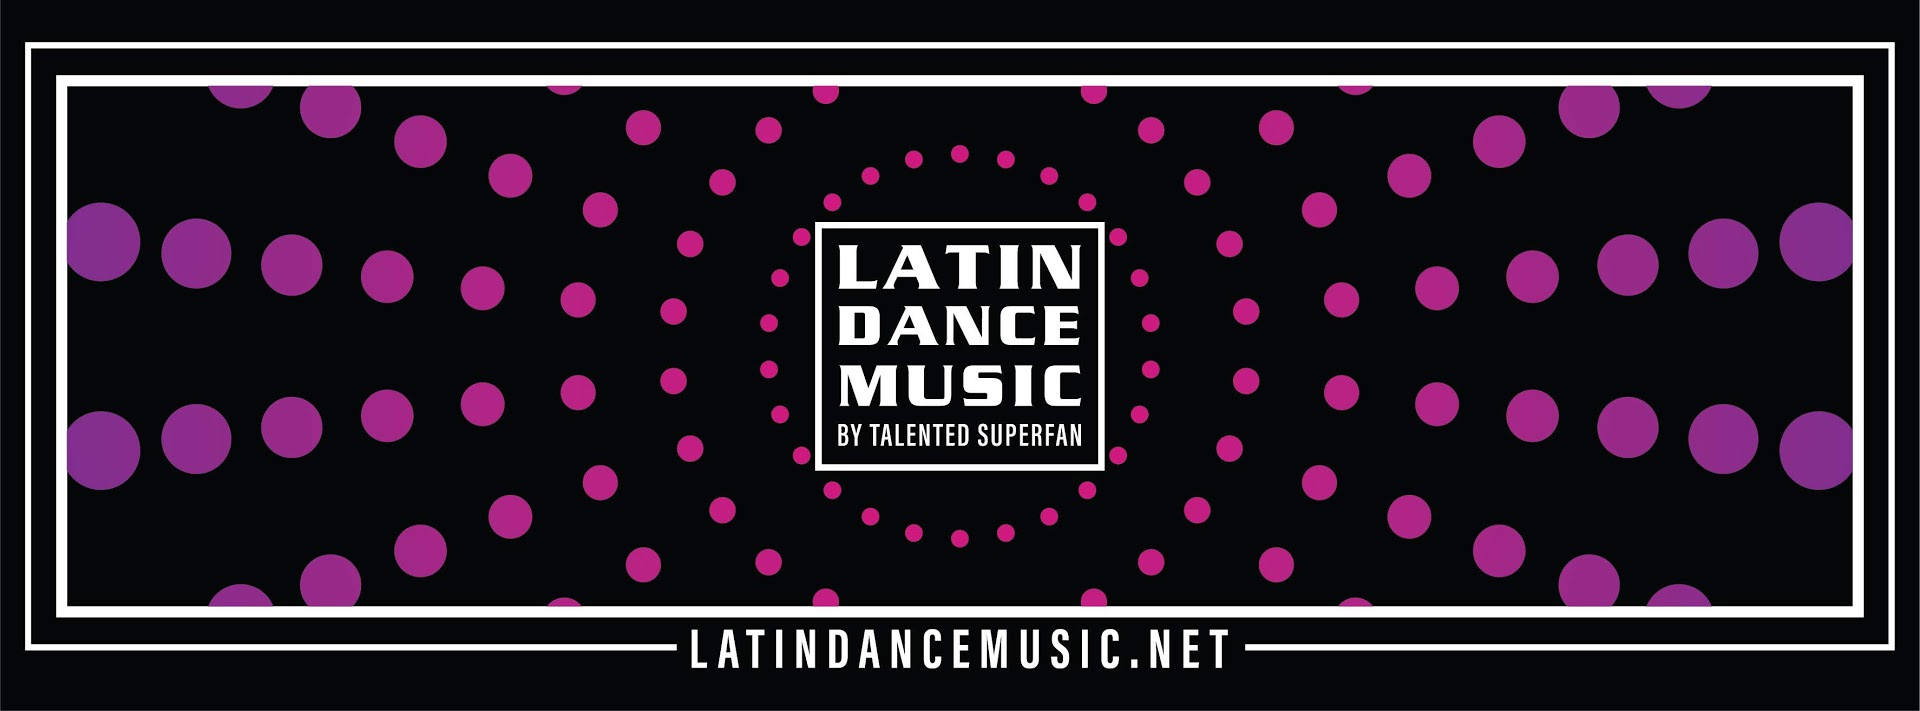 Latin Dance Music by Talented Supefan